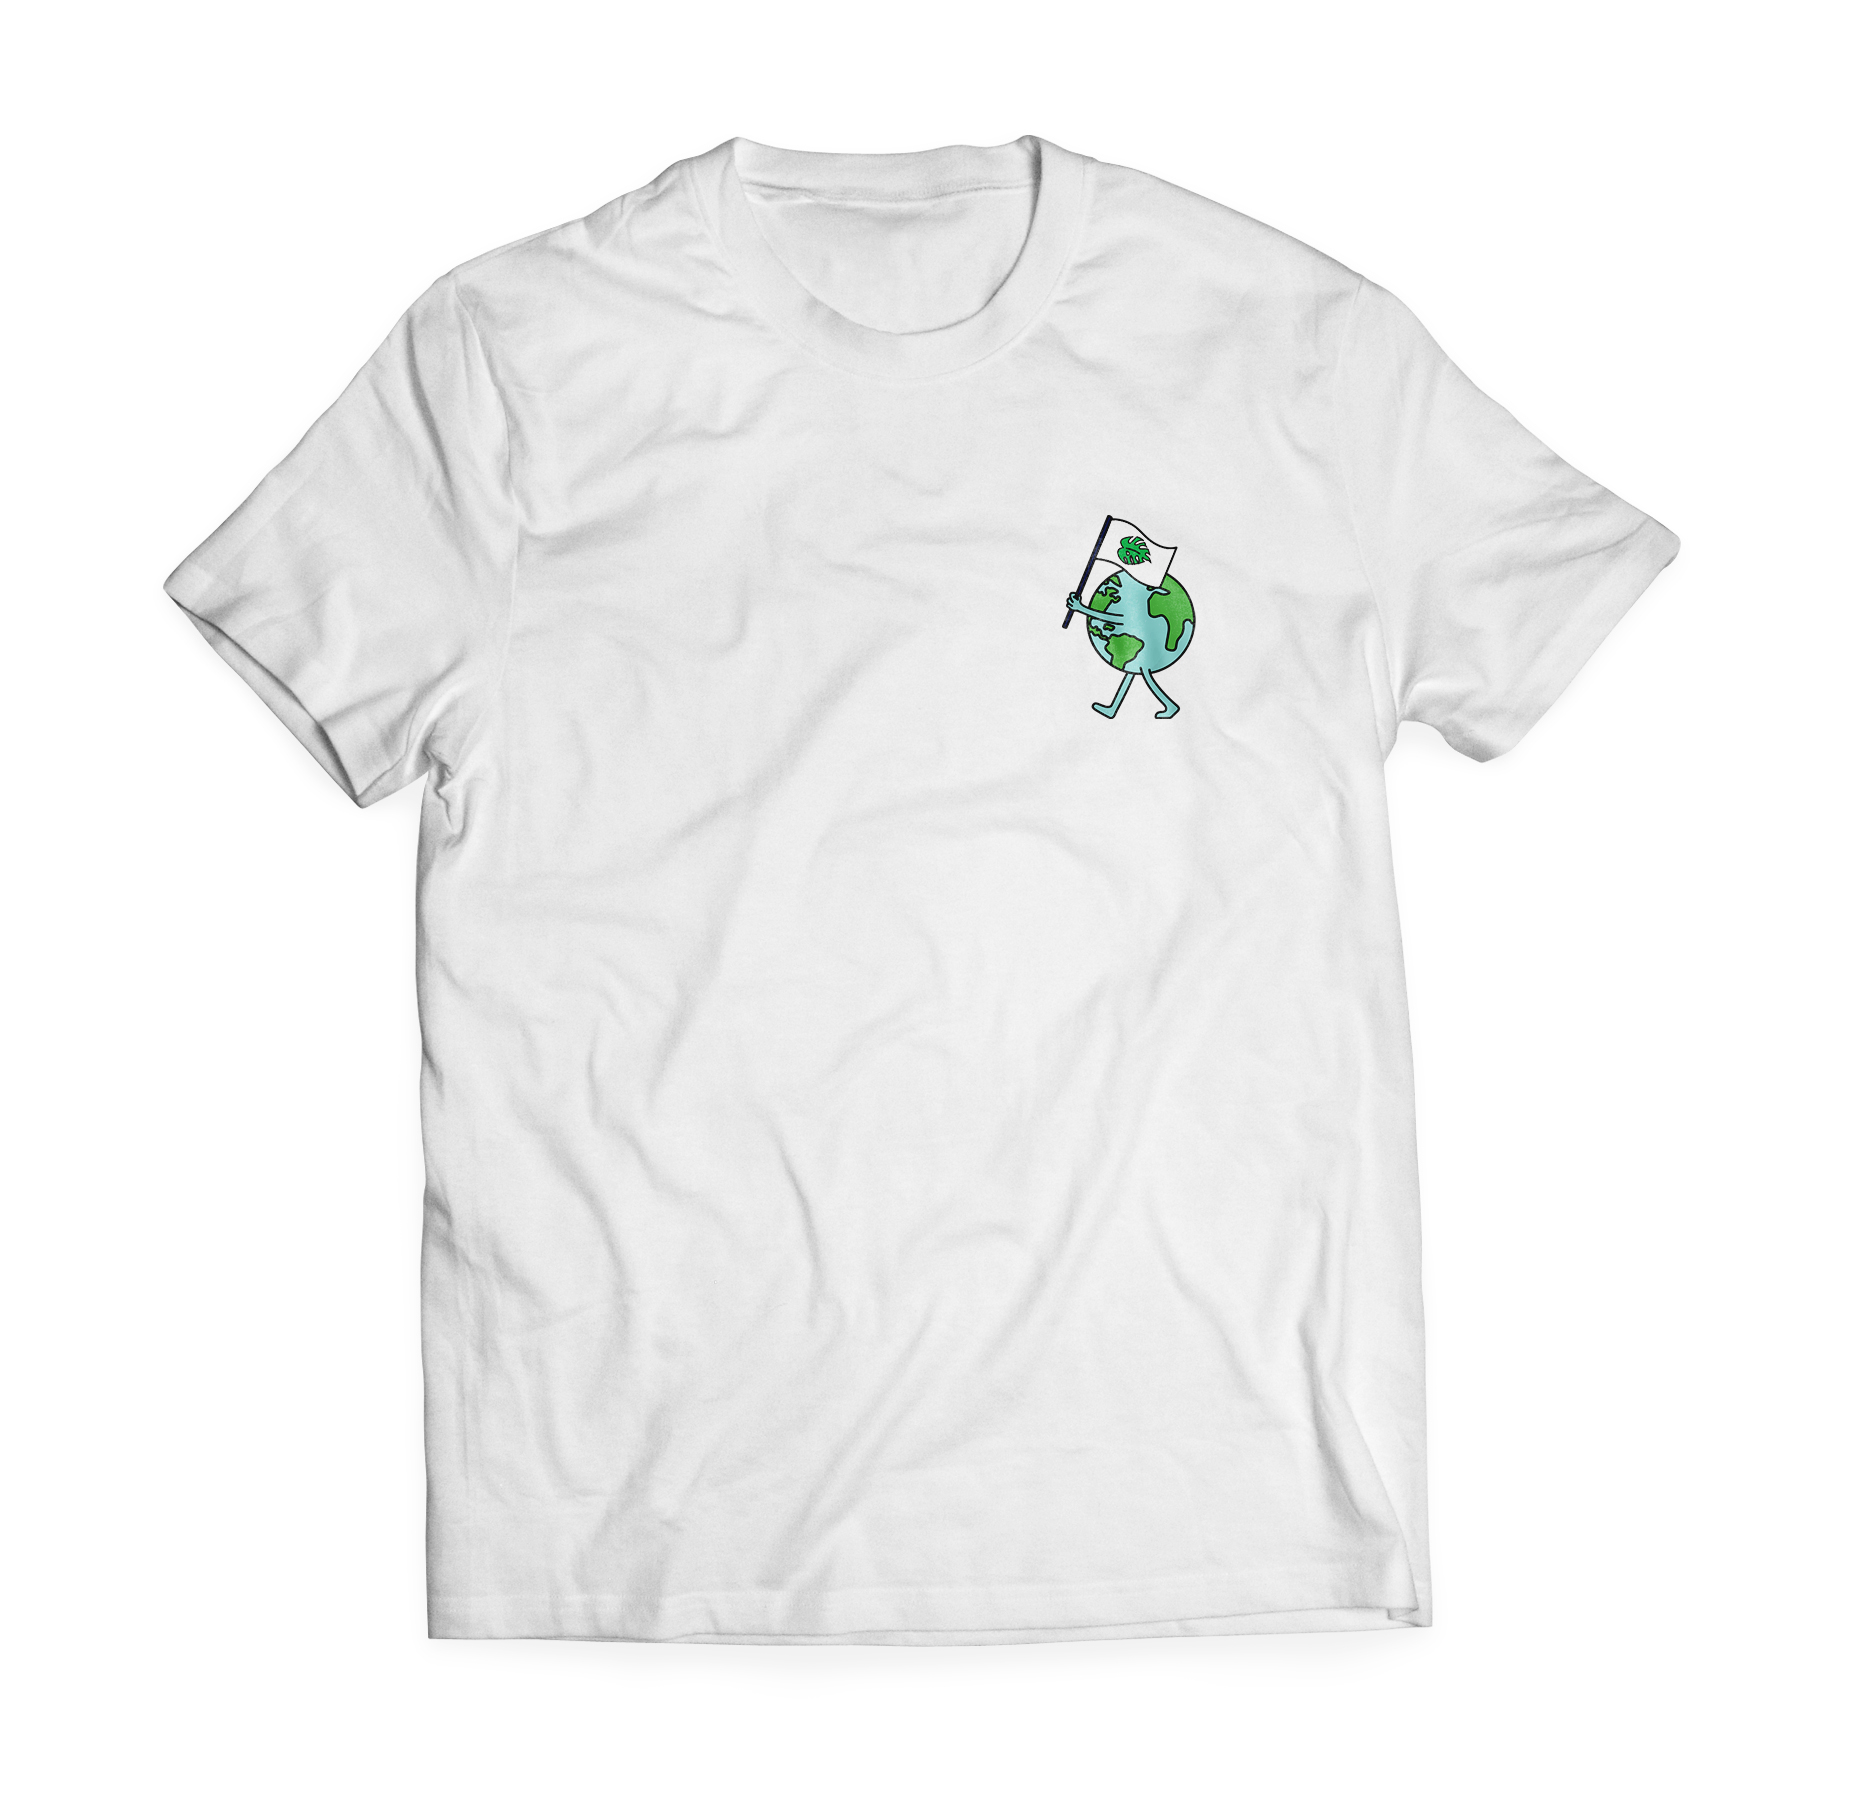 Front design of T-shirt